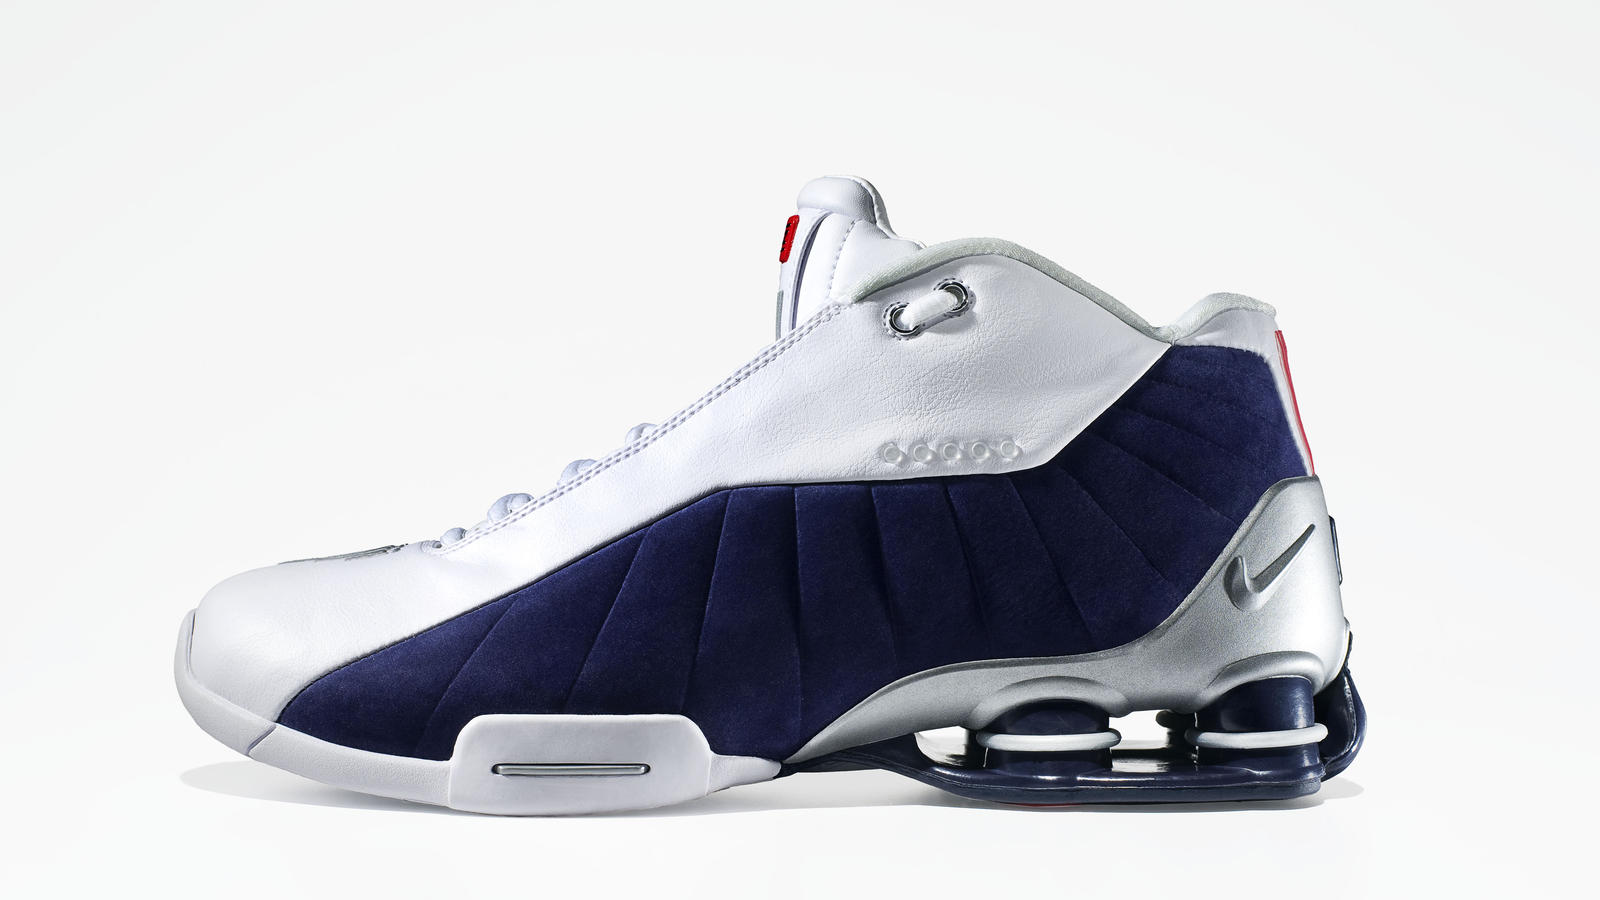 769a80d6cdfa ... mens LooseUntied Nike Shox UPS shoes - YouTube NIKE Sportswear pays  homage to .